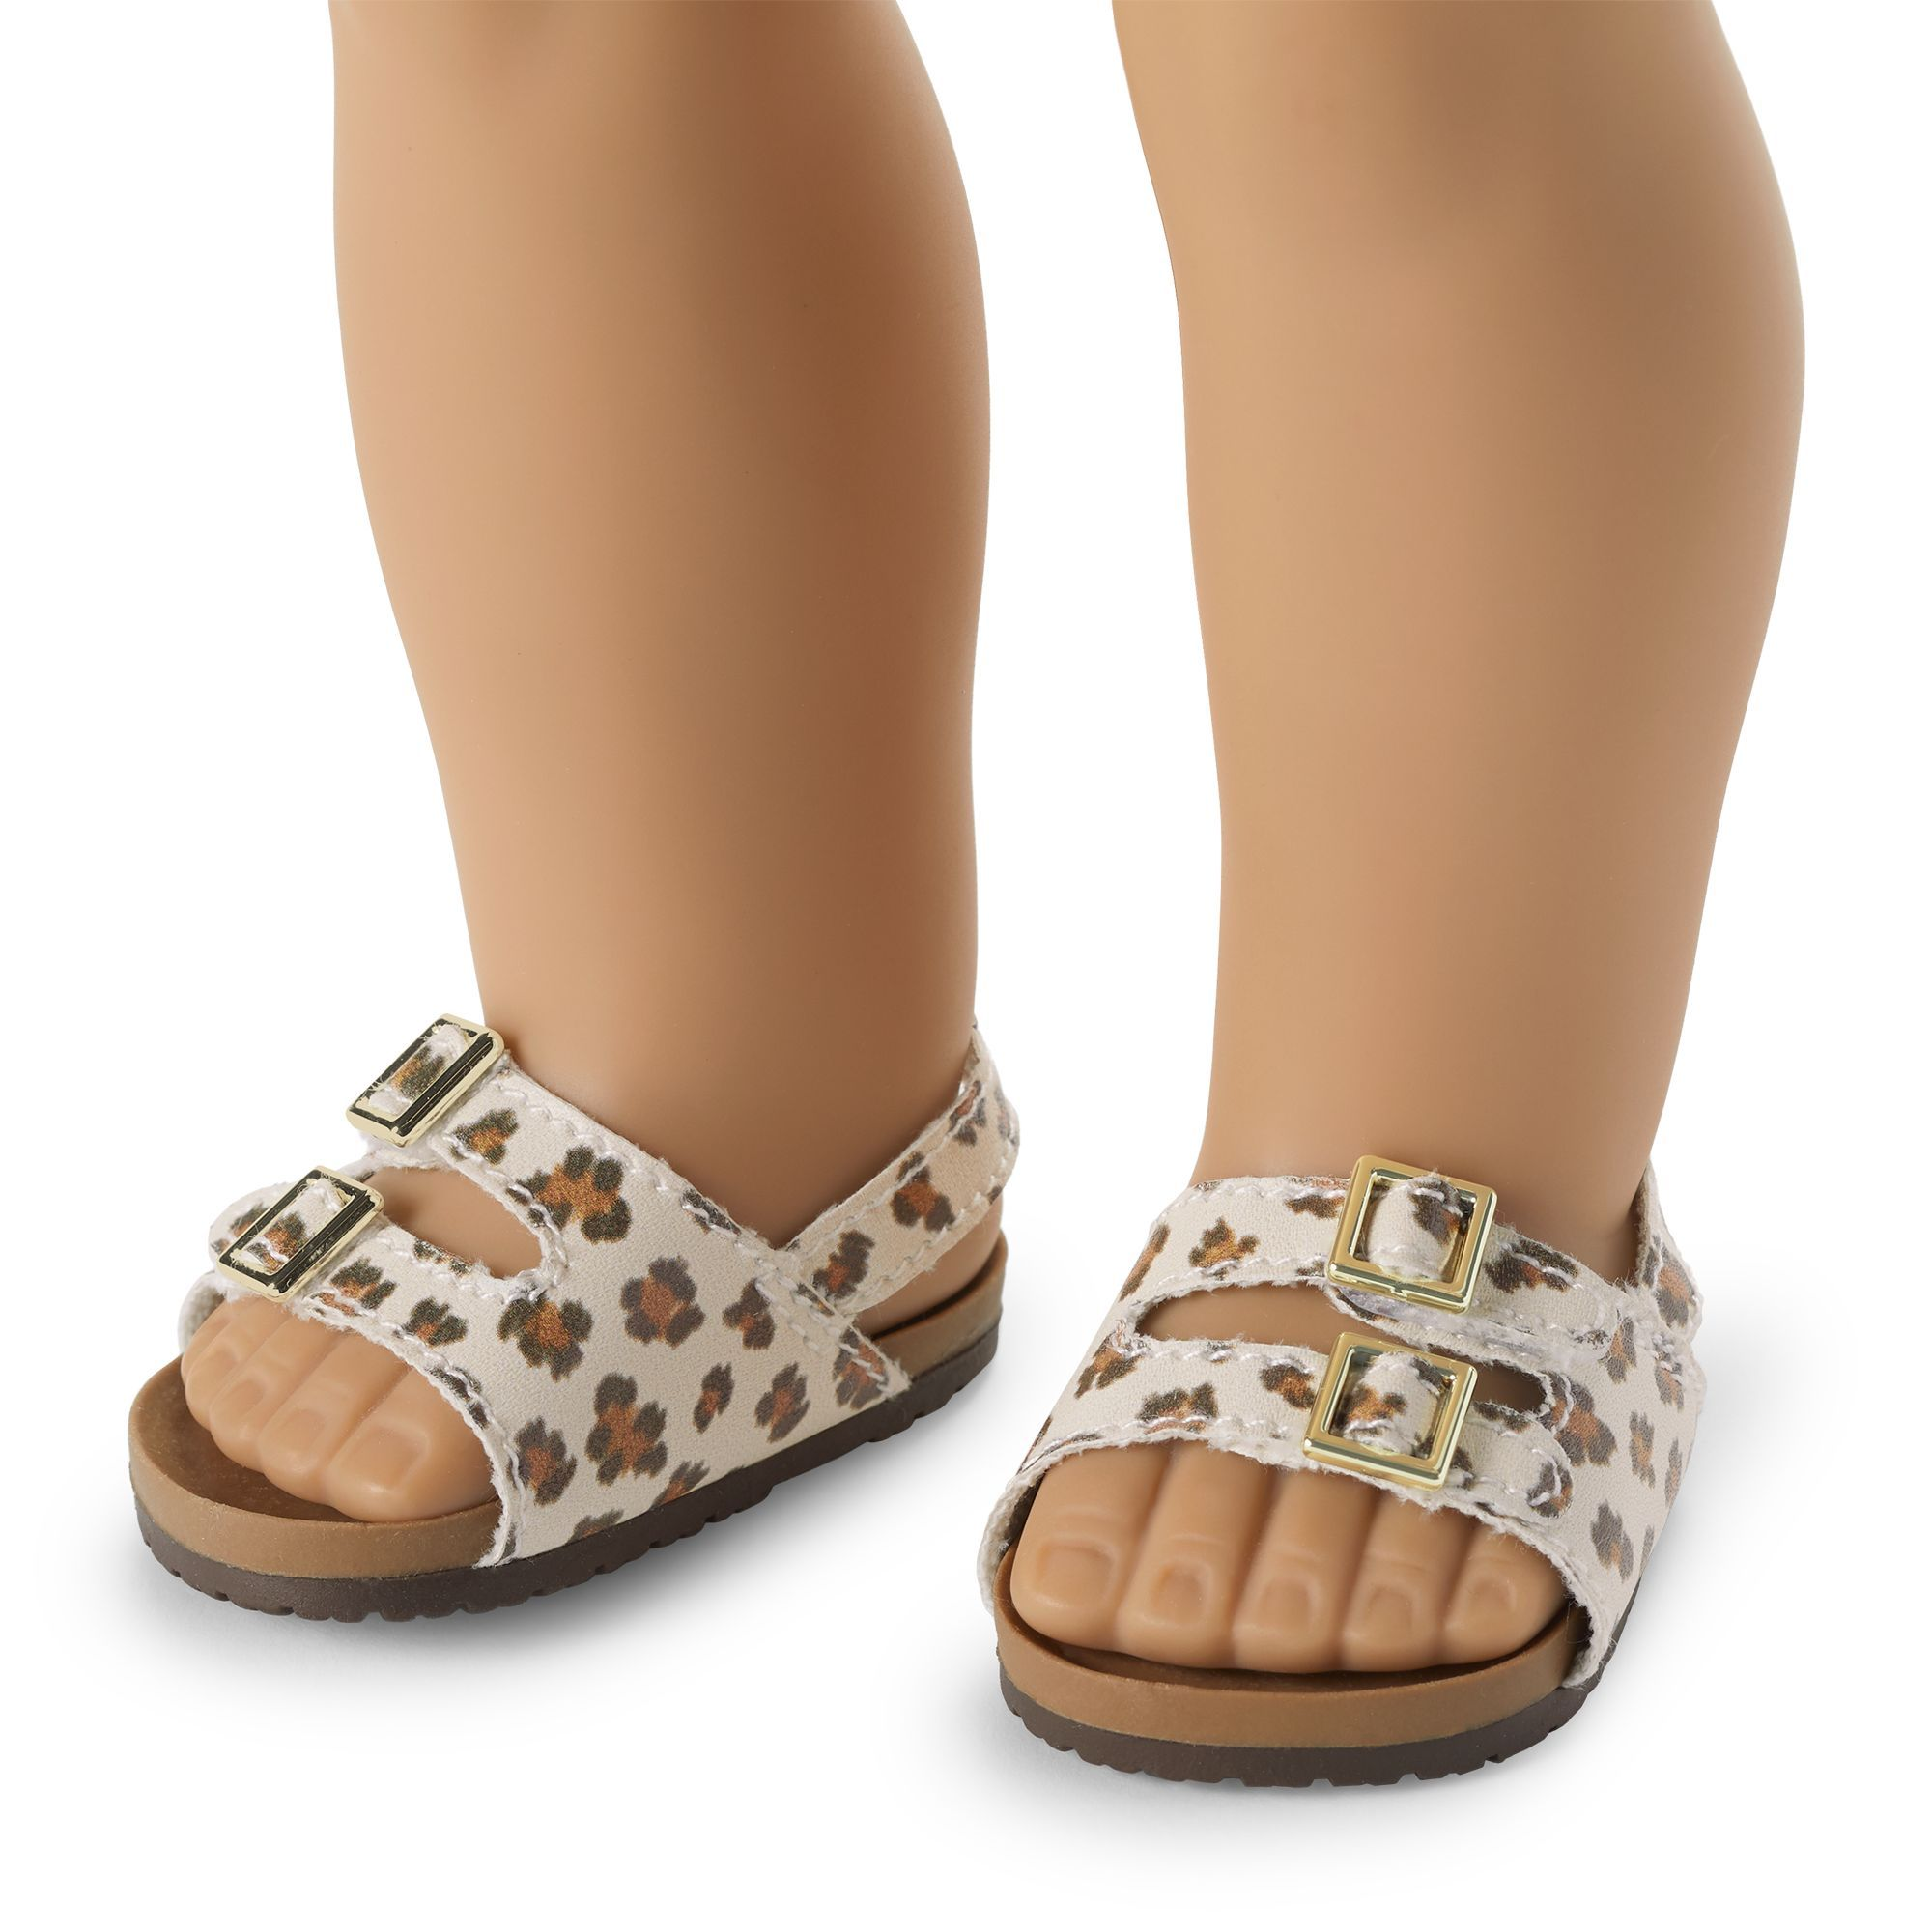 Sandals New For American Girl Doll Black Sandals Accessories Clothes Shoes